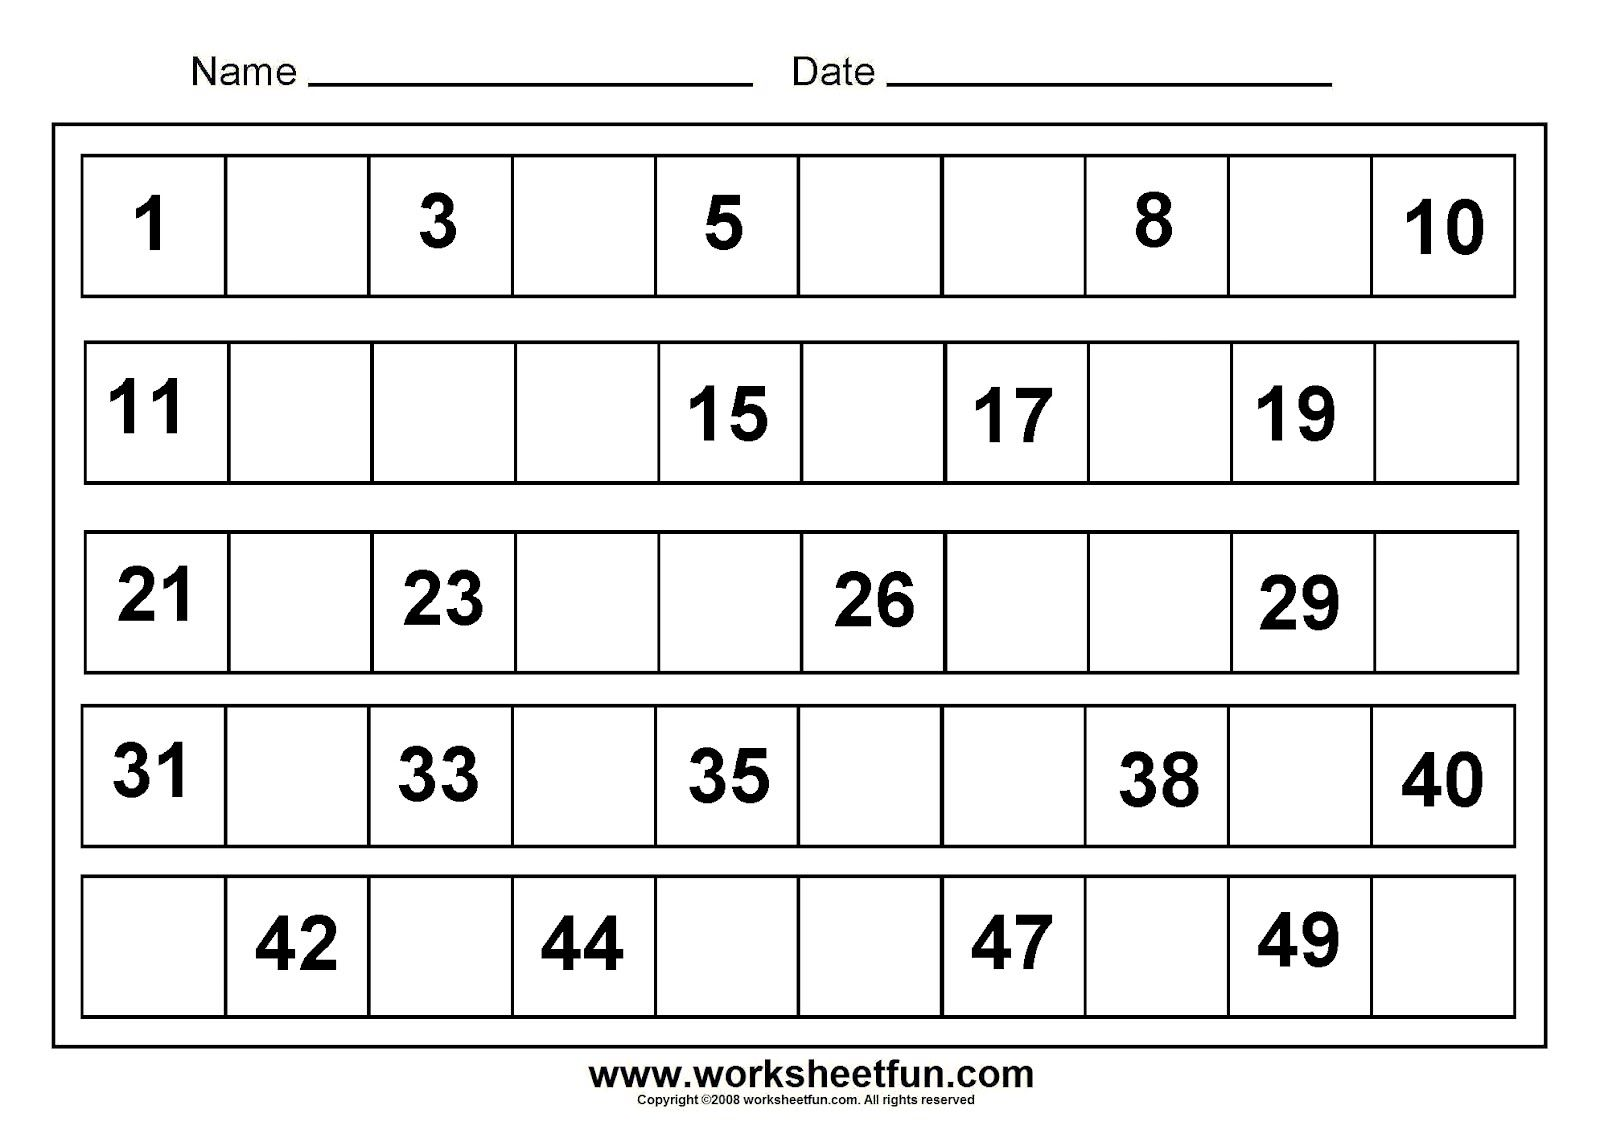 Worksheet Math Worksheets Preschool Free Printable 1000 images about math on pinterest worksheets for kindergarten printable and worksheets